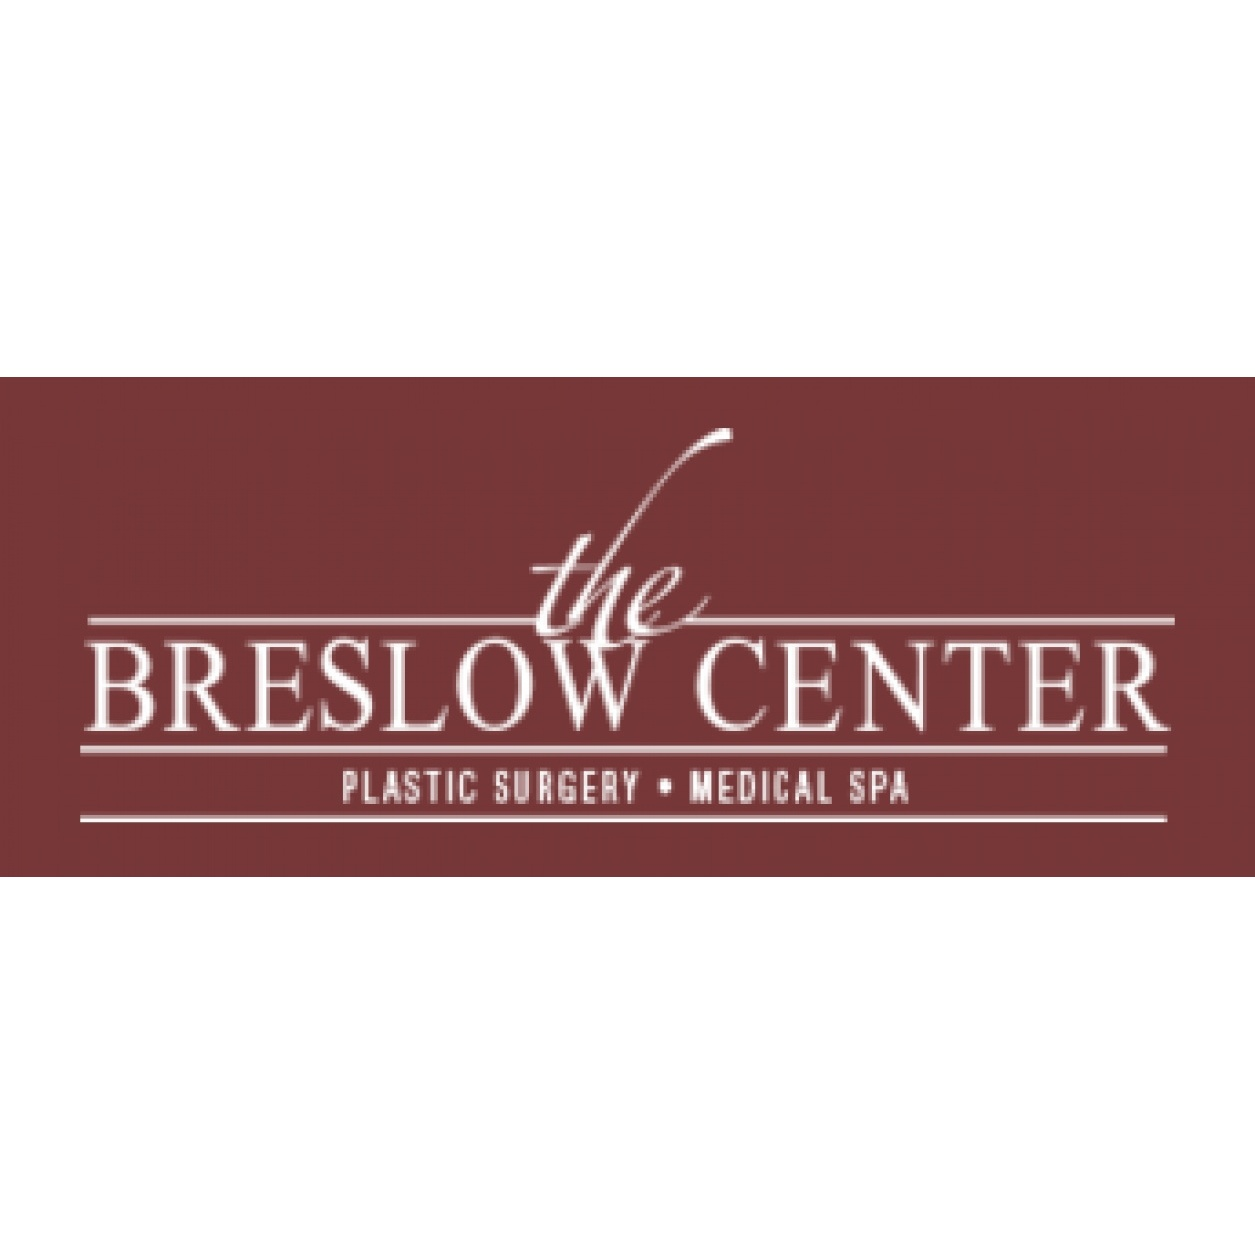 The Breslow Center for Plastic Surgery & Medical Spa